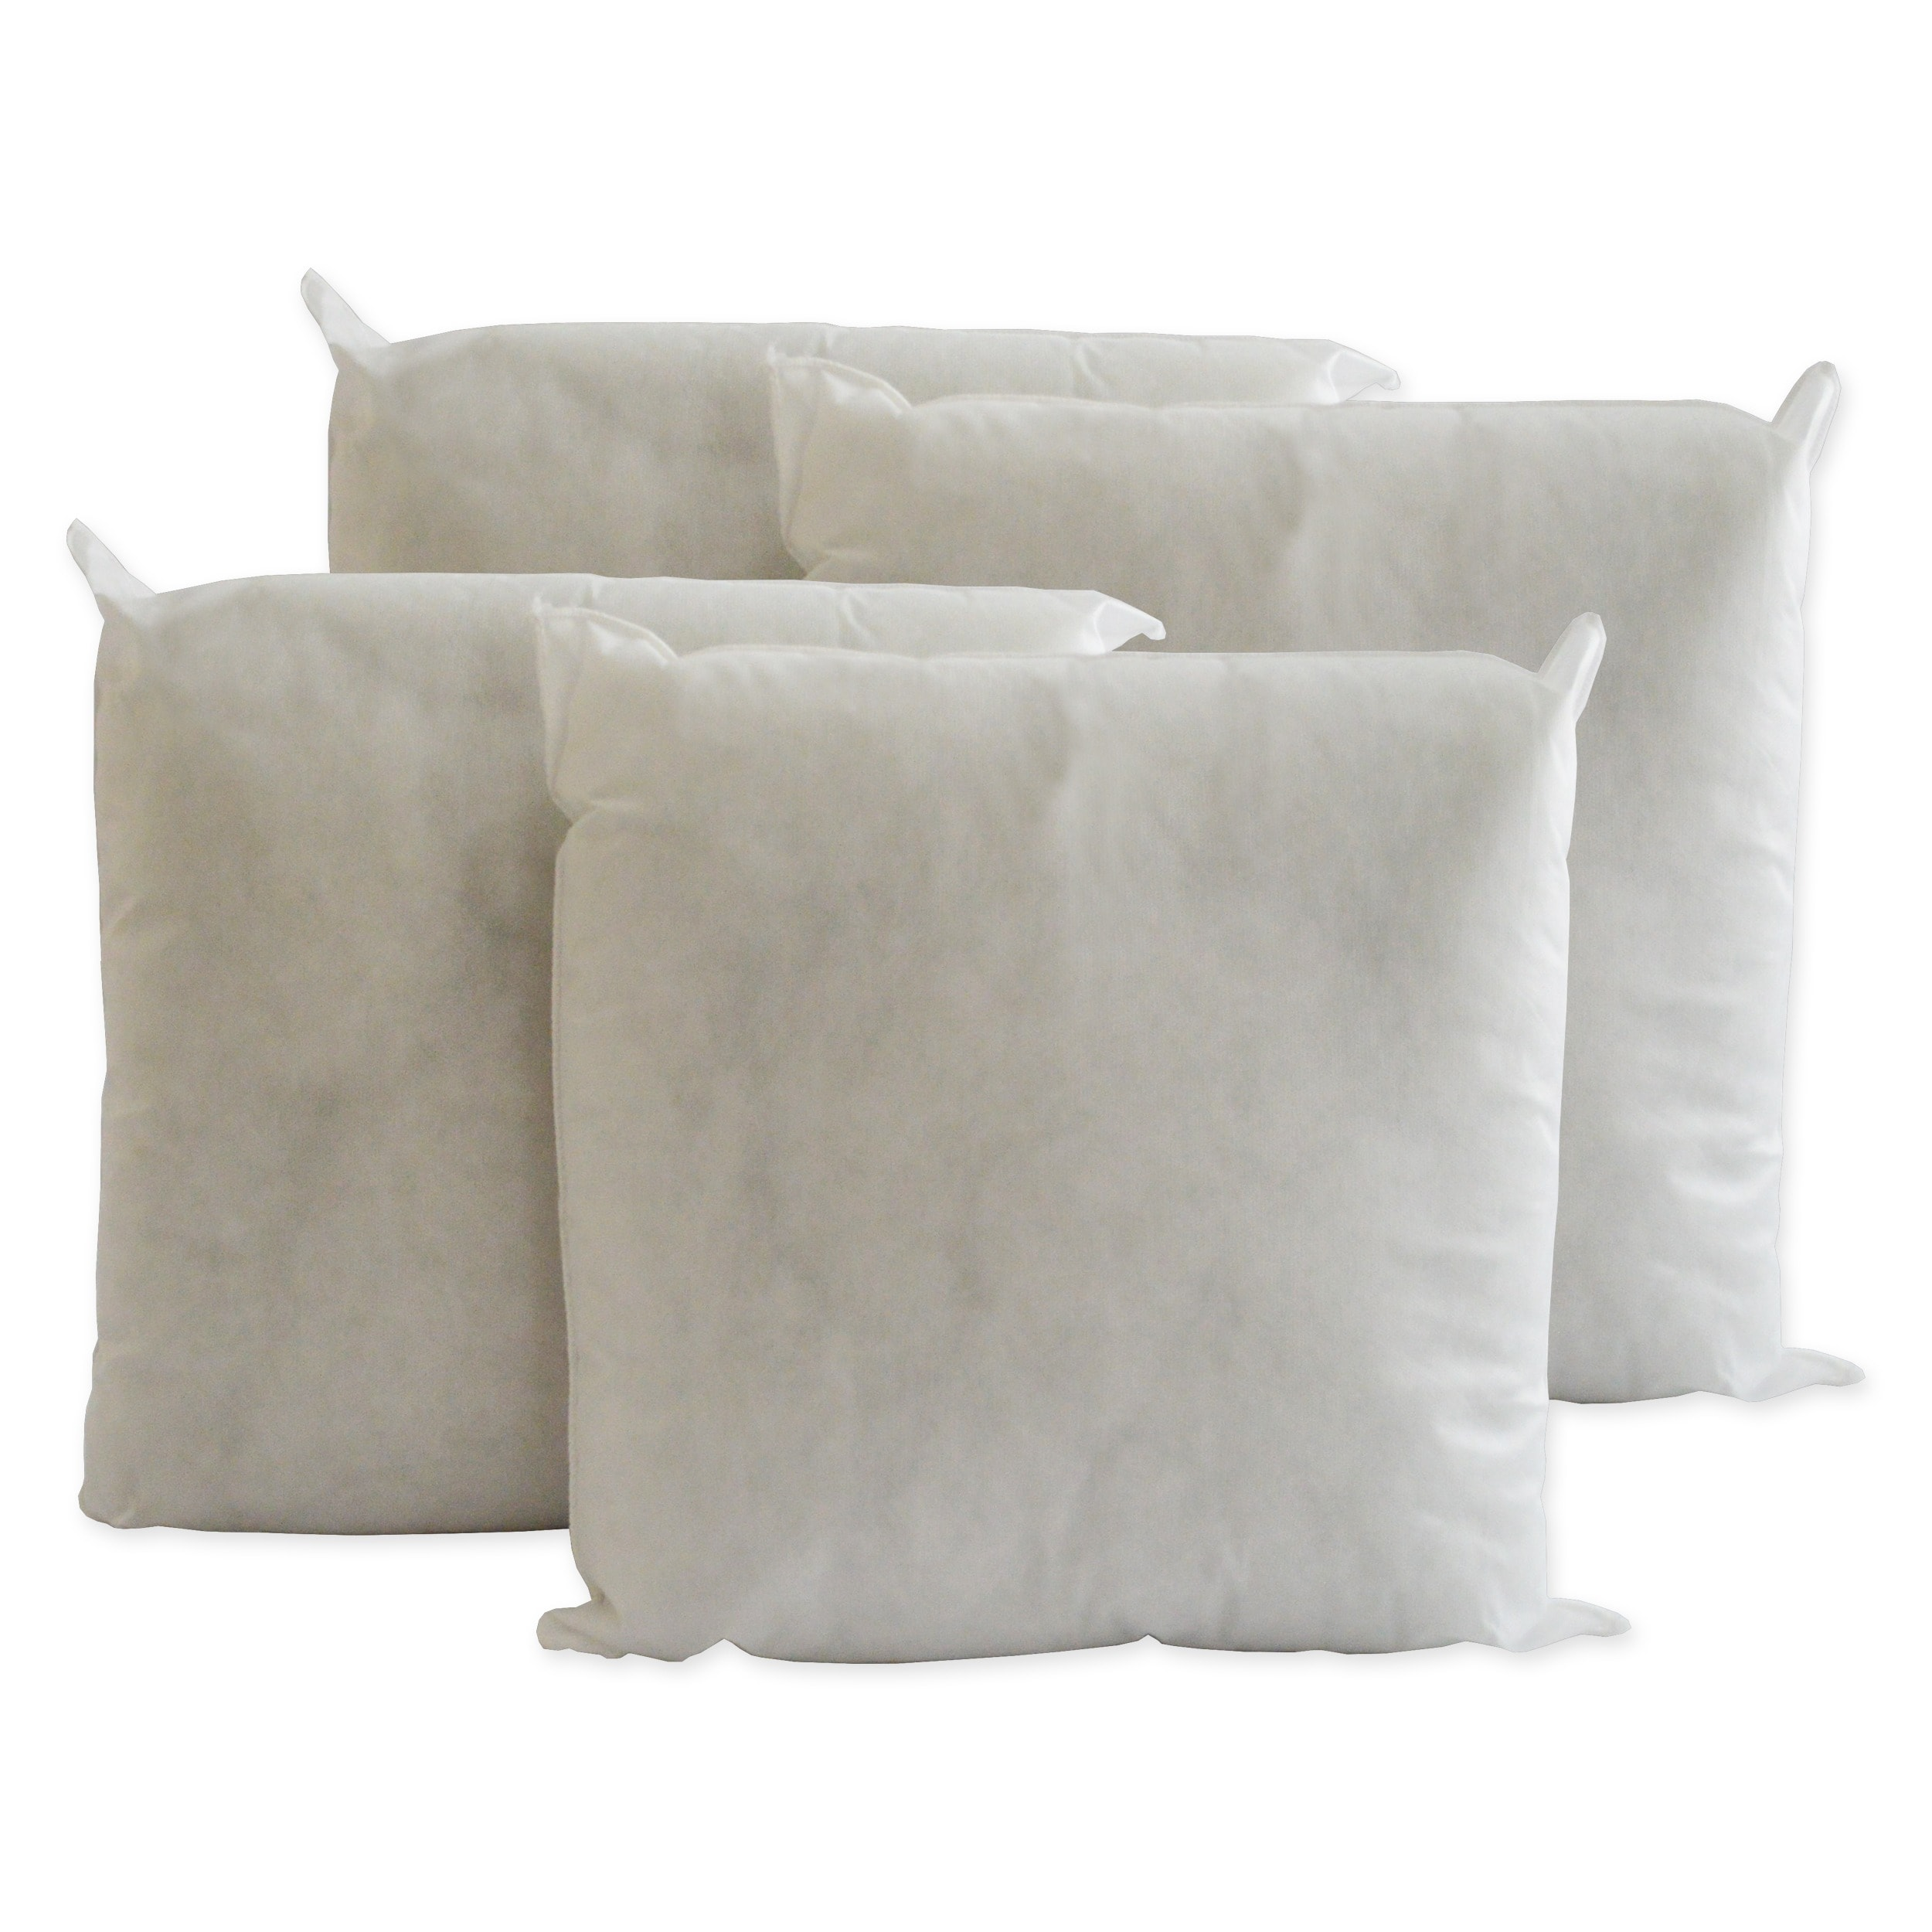 x pillow forms by insert blankets sizes inserts brian